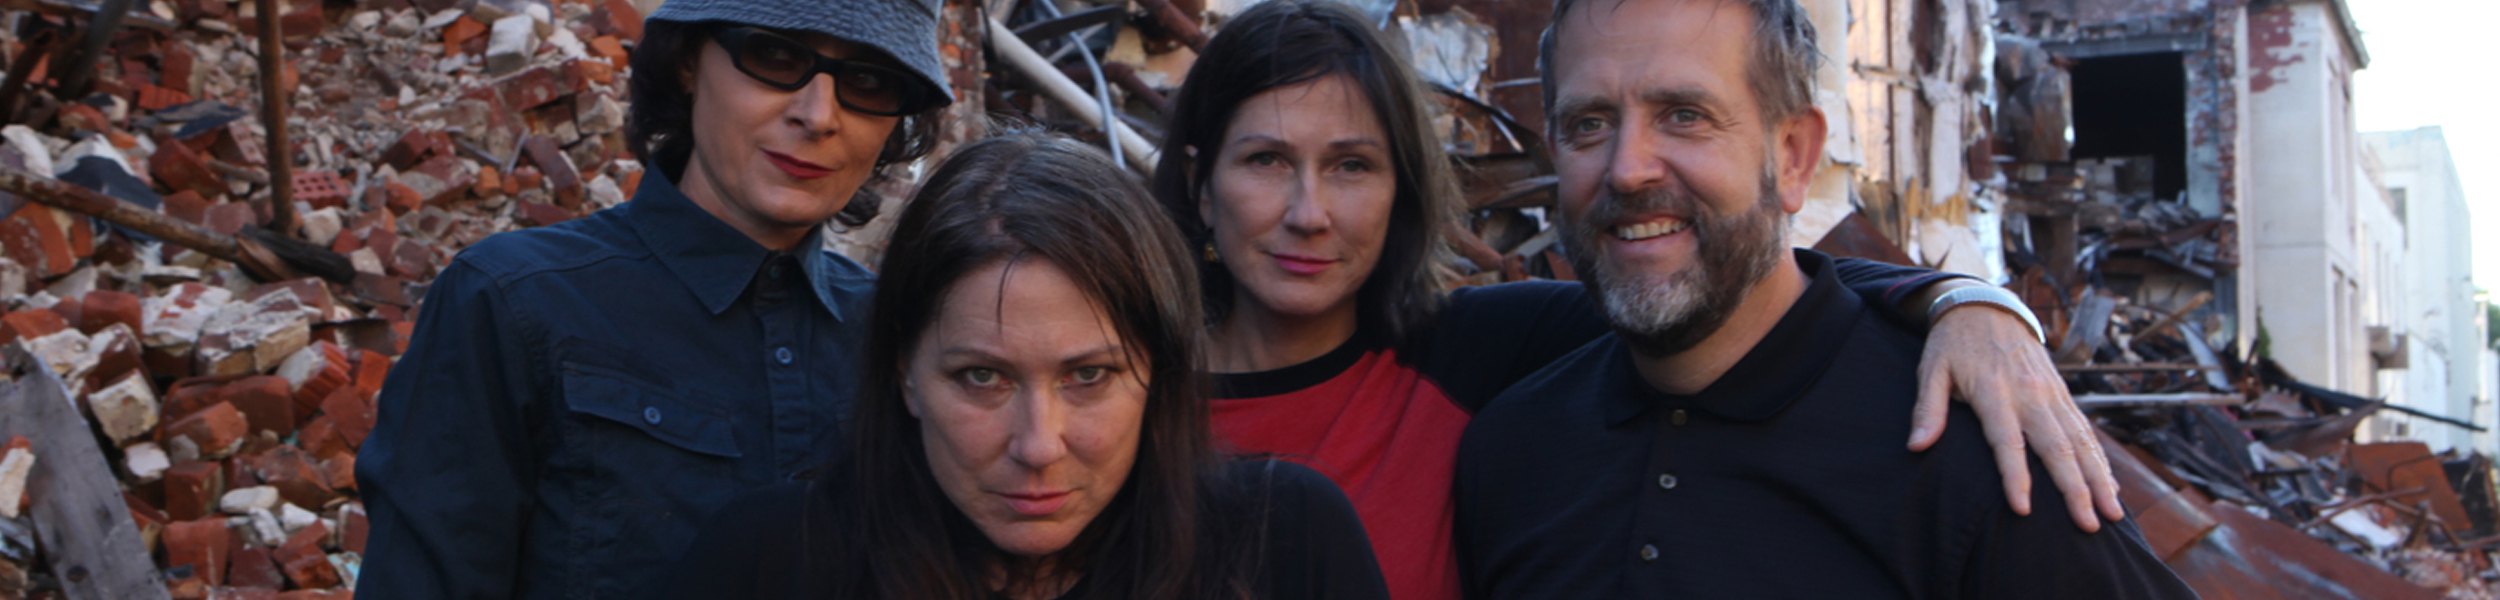 The Breeders - Last Splash Turns 20. The Breeders Reunite For Shows In The US And Europe